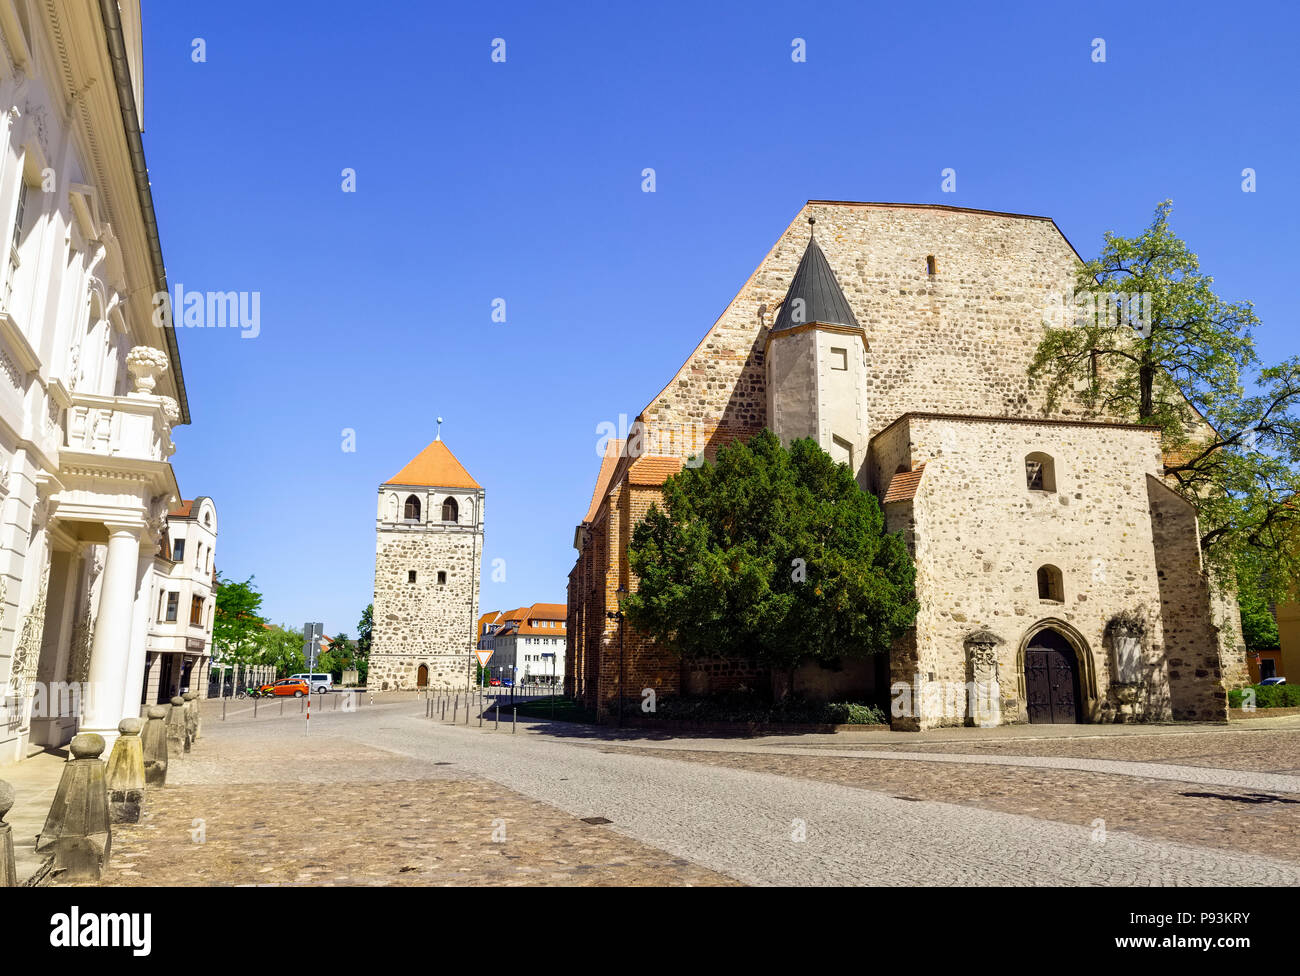 St.-Bartholomäi Church, Zerbst/Anhalt, Saxony-Anhalt, Germany Stock Photo